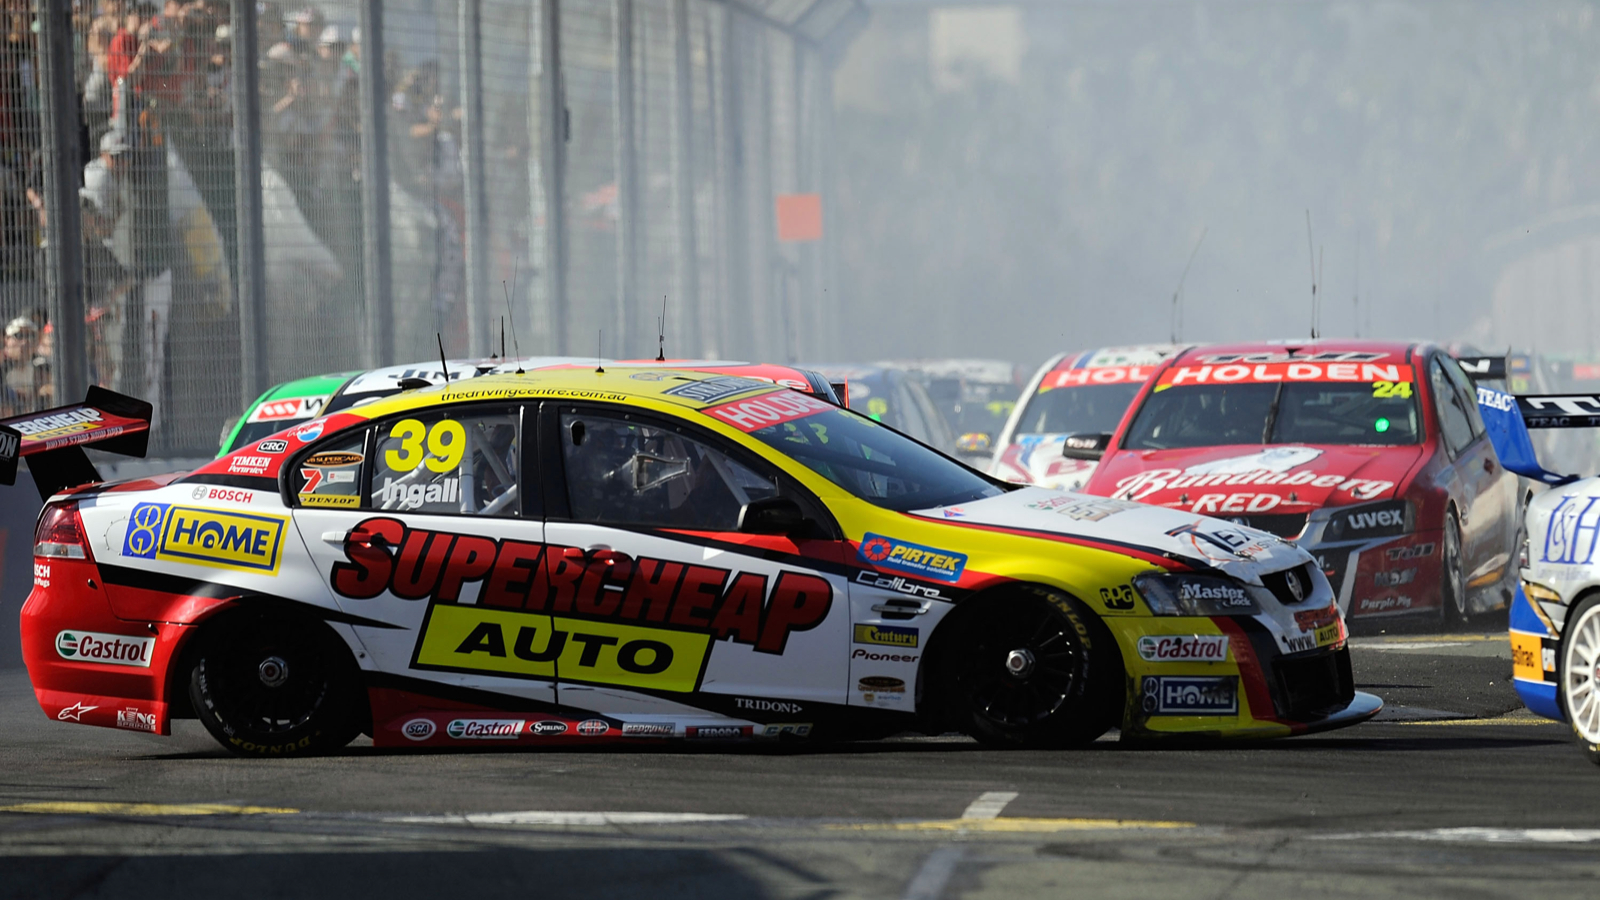 Click here to read Weekend Motorsports Roundup: Dec. 1-2, 2012